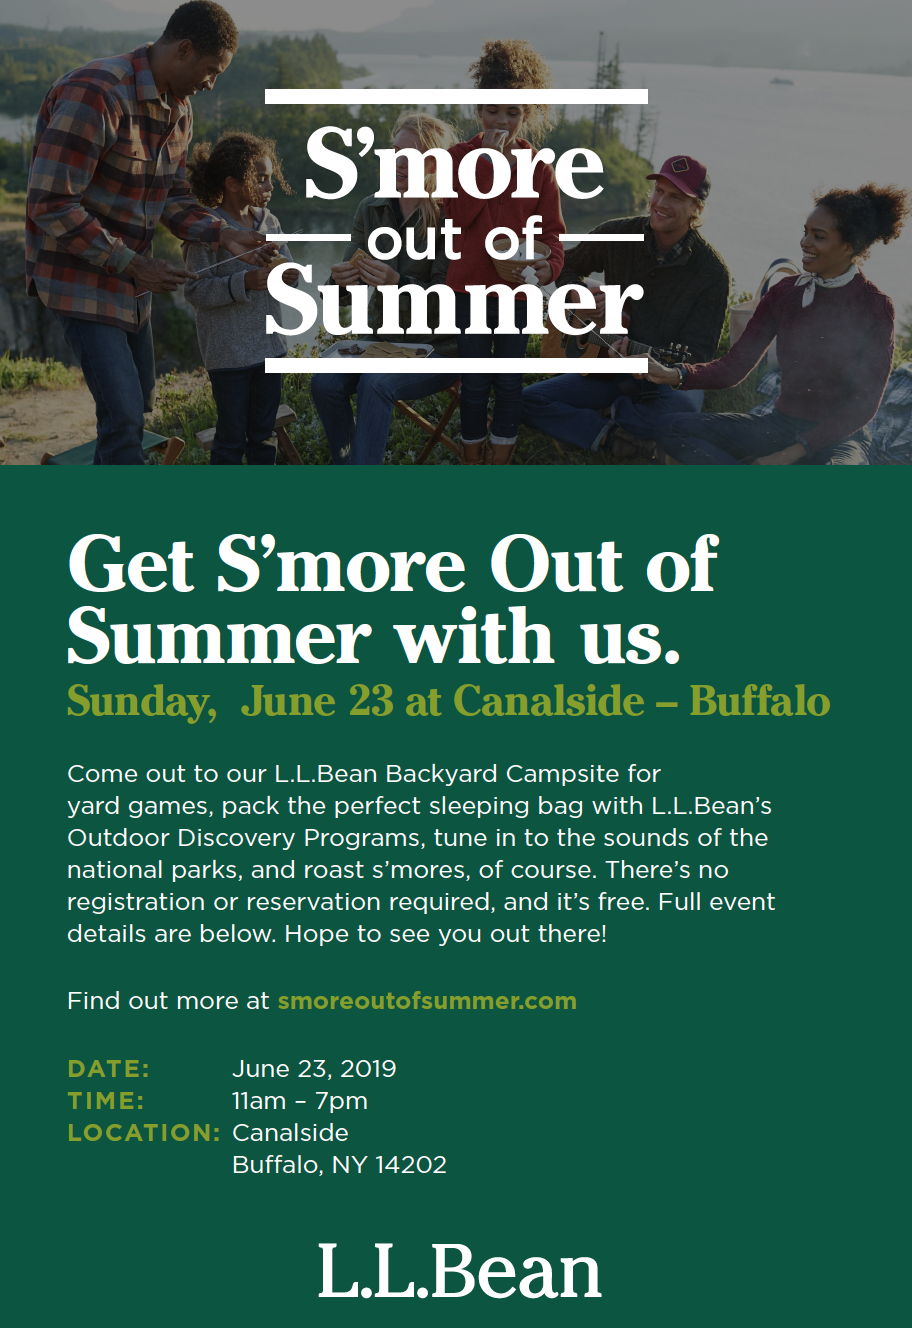 FREE- S'more out of Summer at Canalside- June 23, 2019- Buffalo, NY |  BoredomMD.com